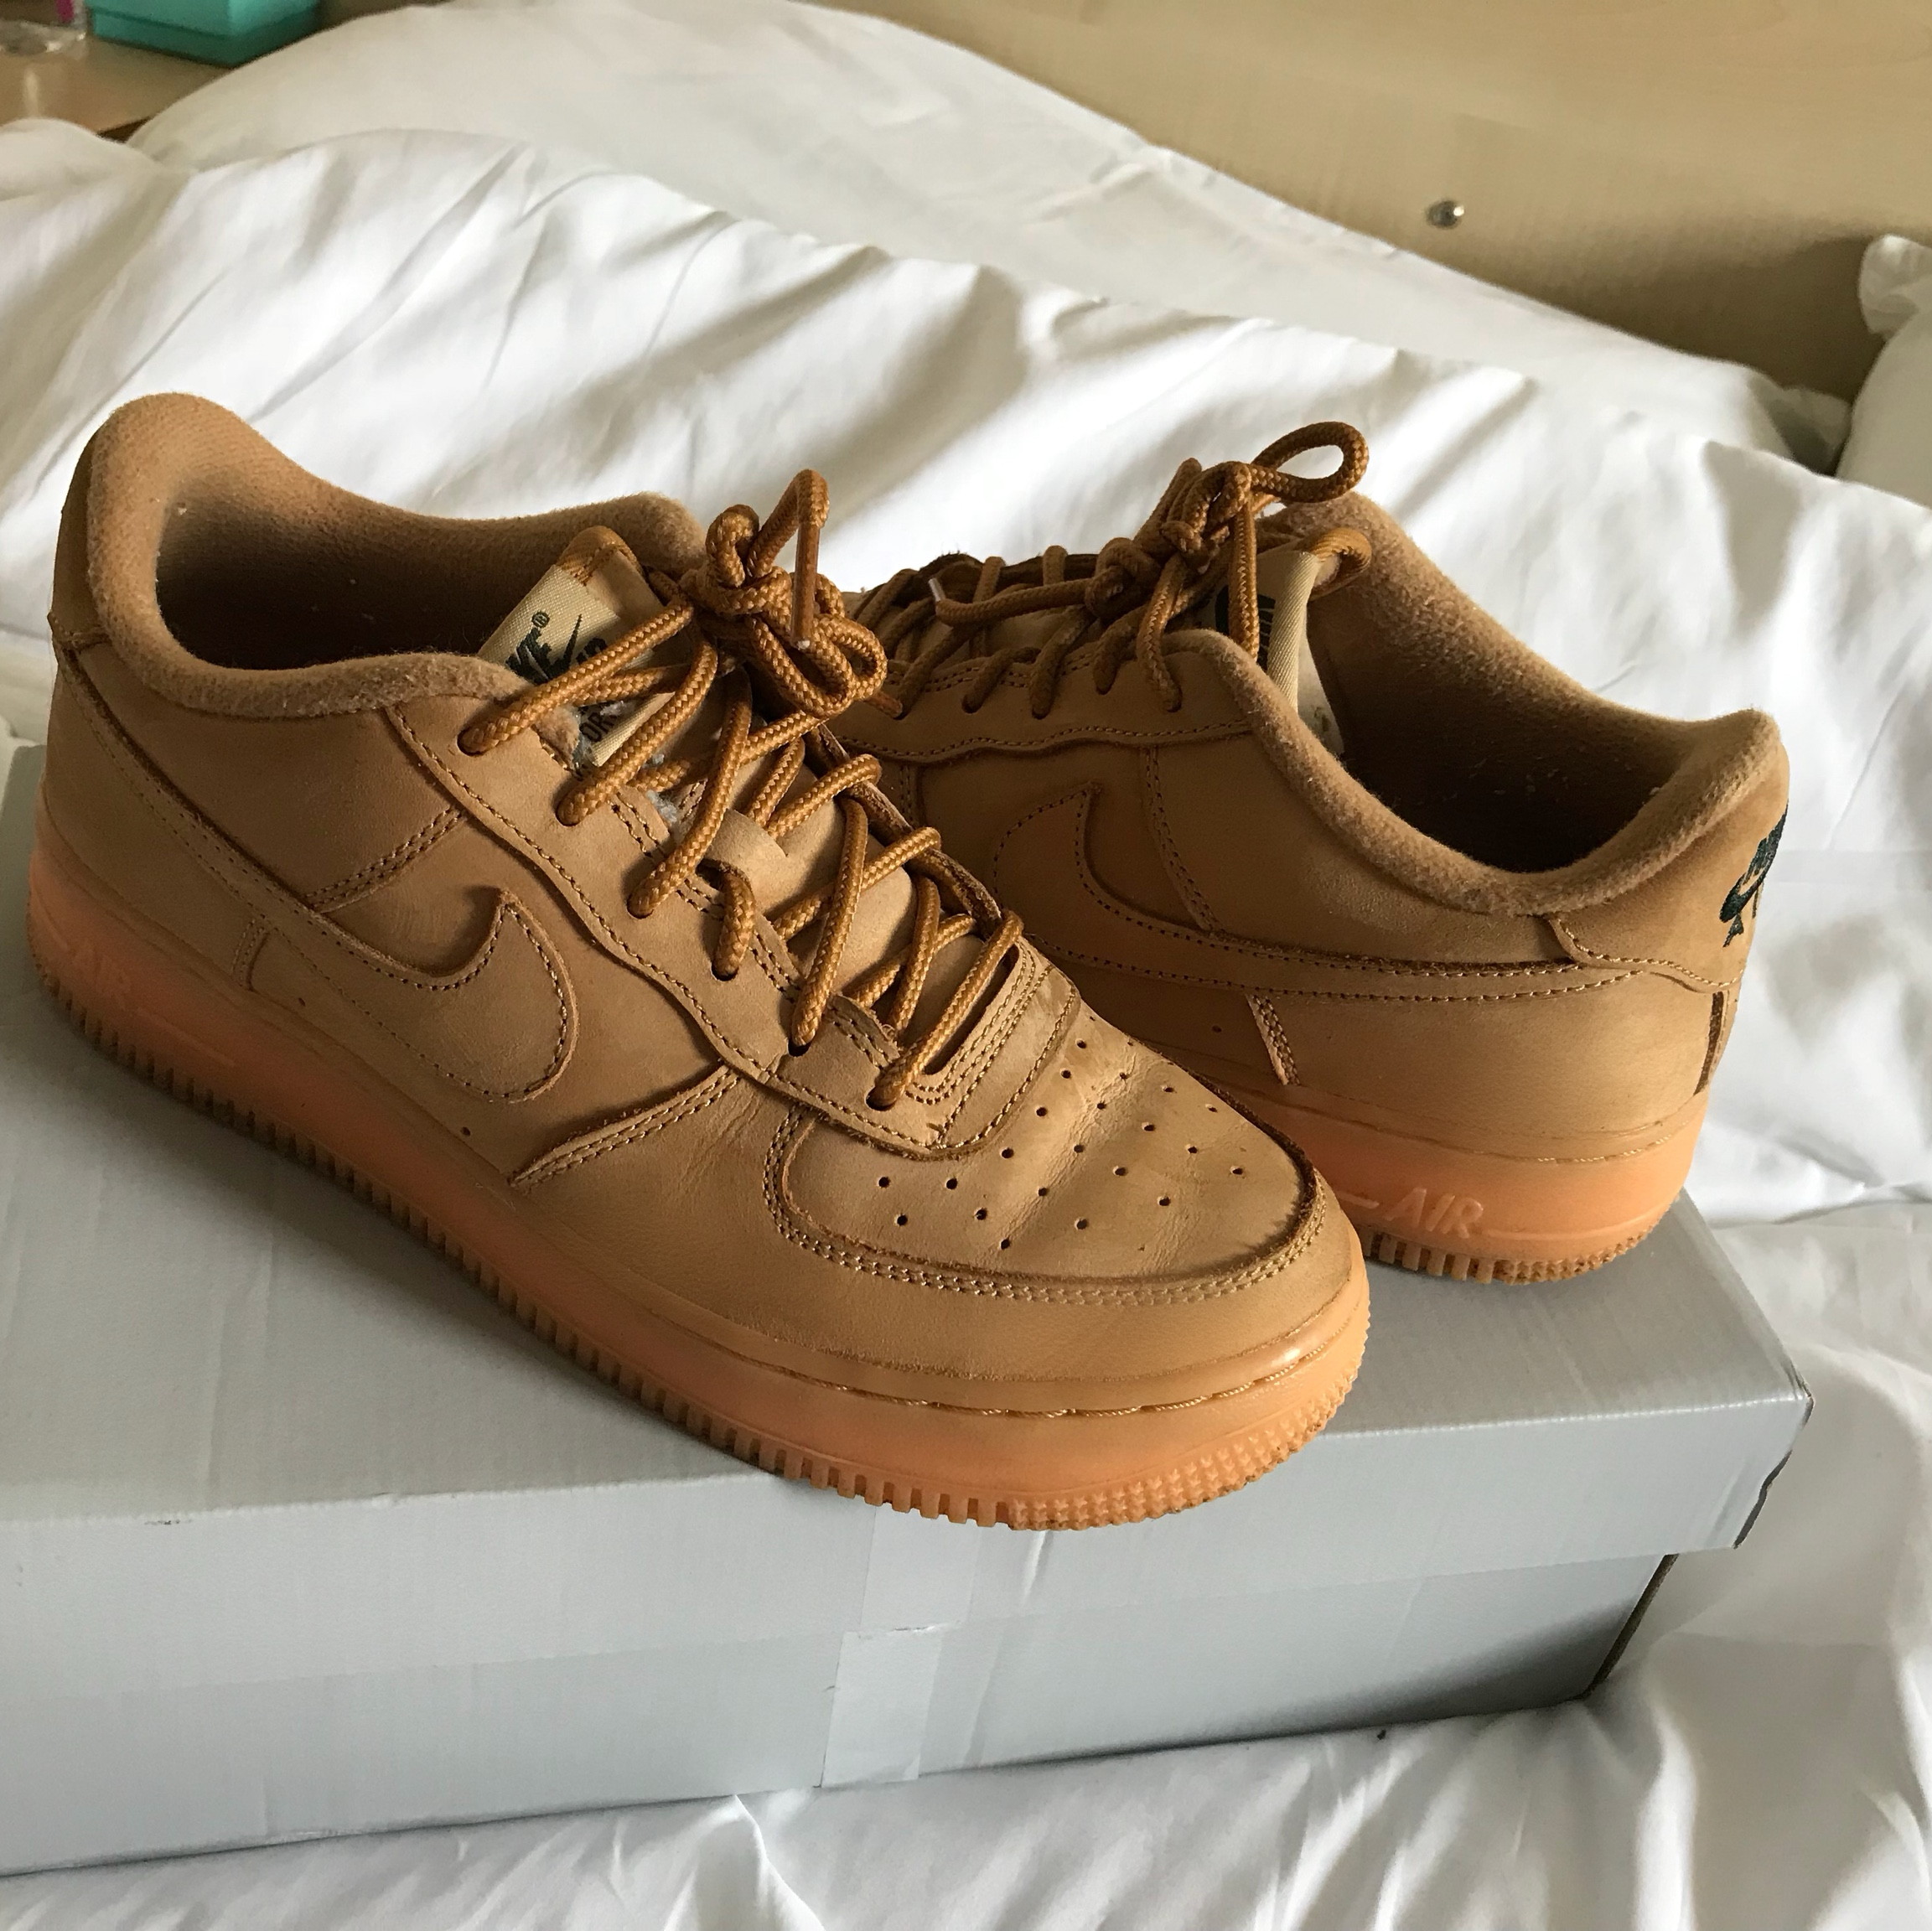 Camel suede low Nike Air Force 1's